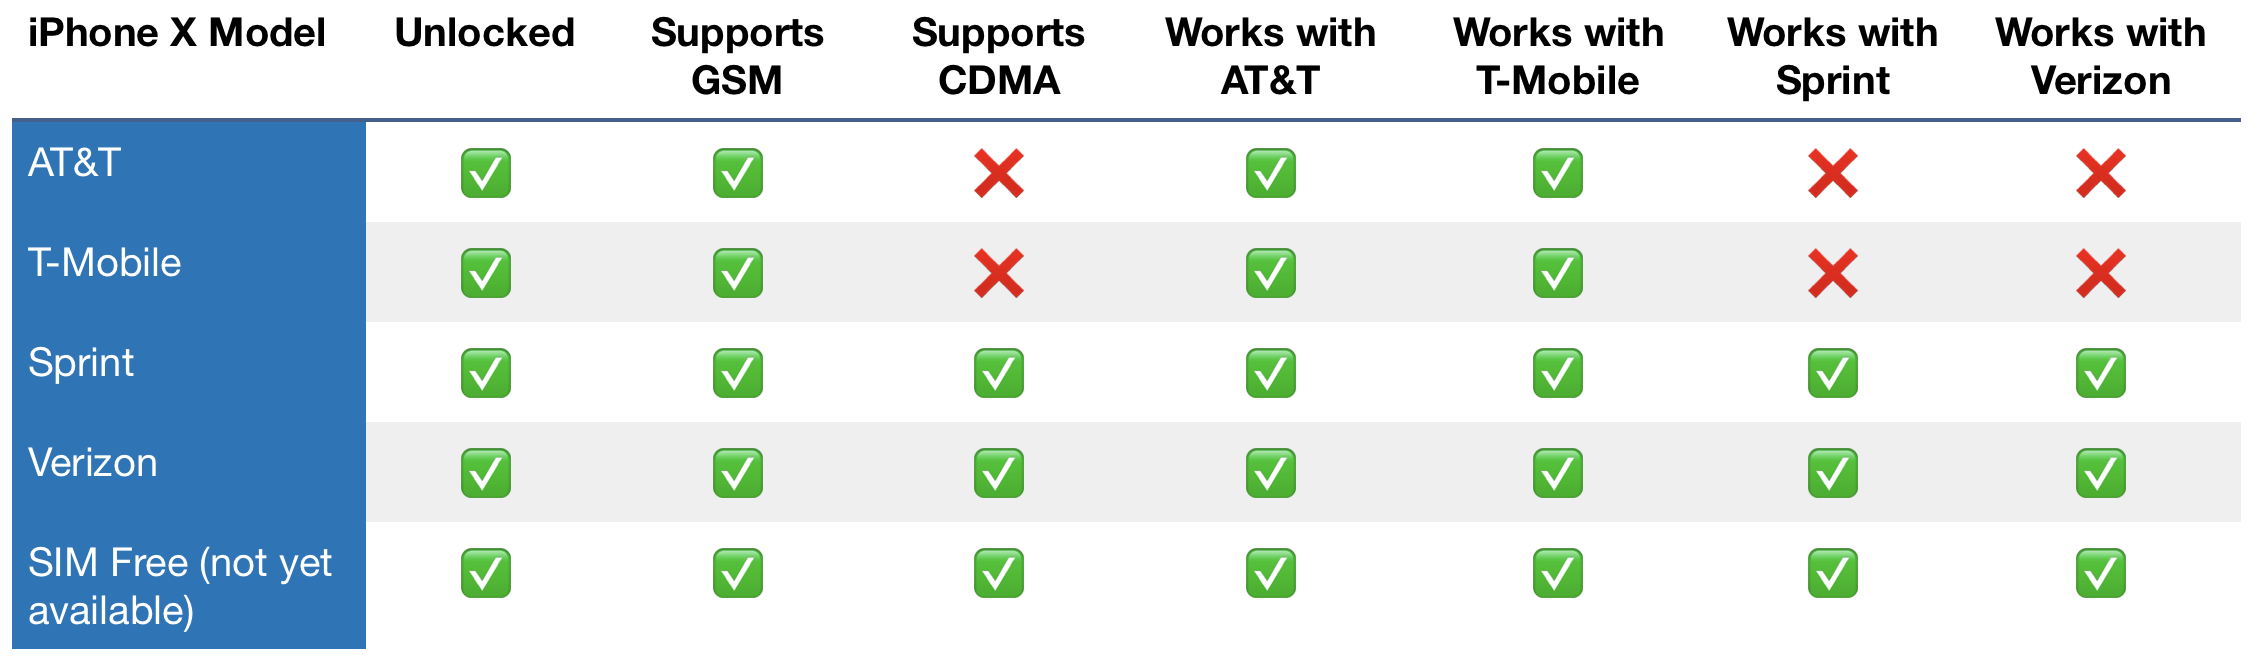 Carrier compatibility for the various iPhone X models - 9to5Mac